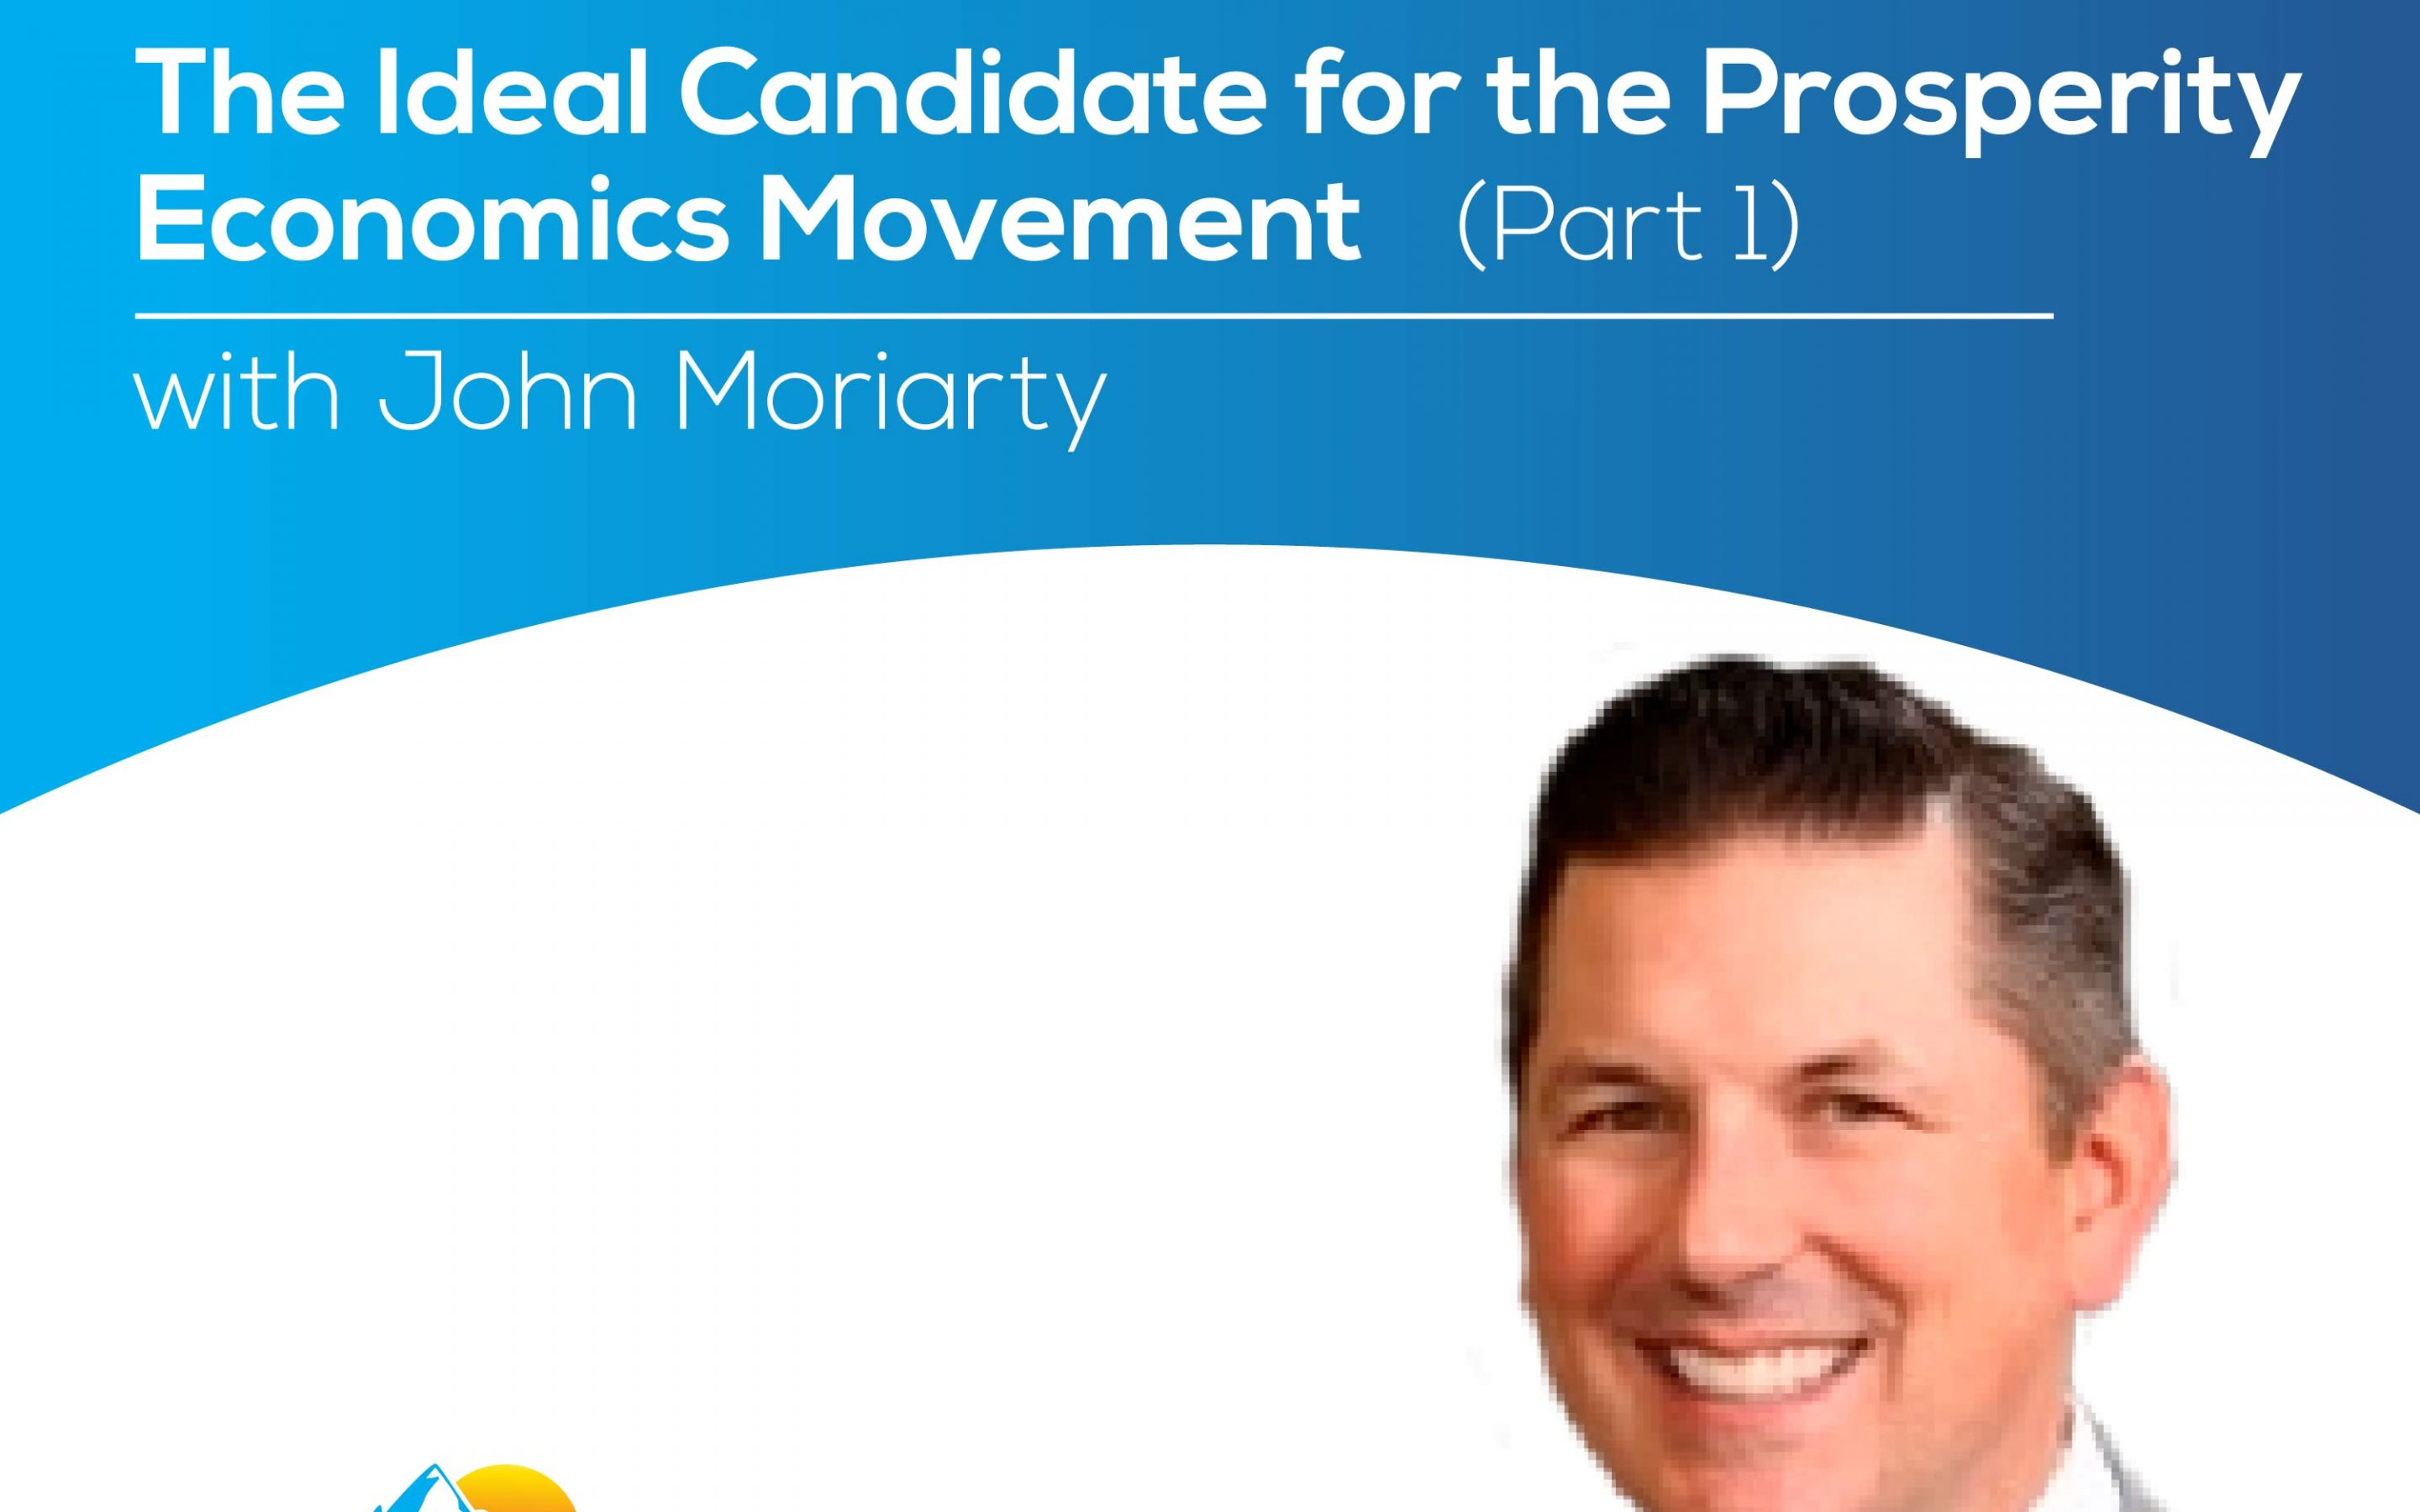 The Ideal Candidate for the Prosperity Economics Movement with John Moriarty (part 2) – Episode 171